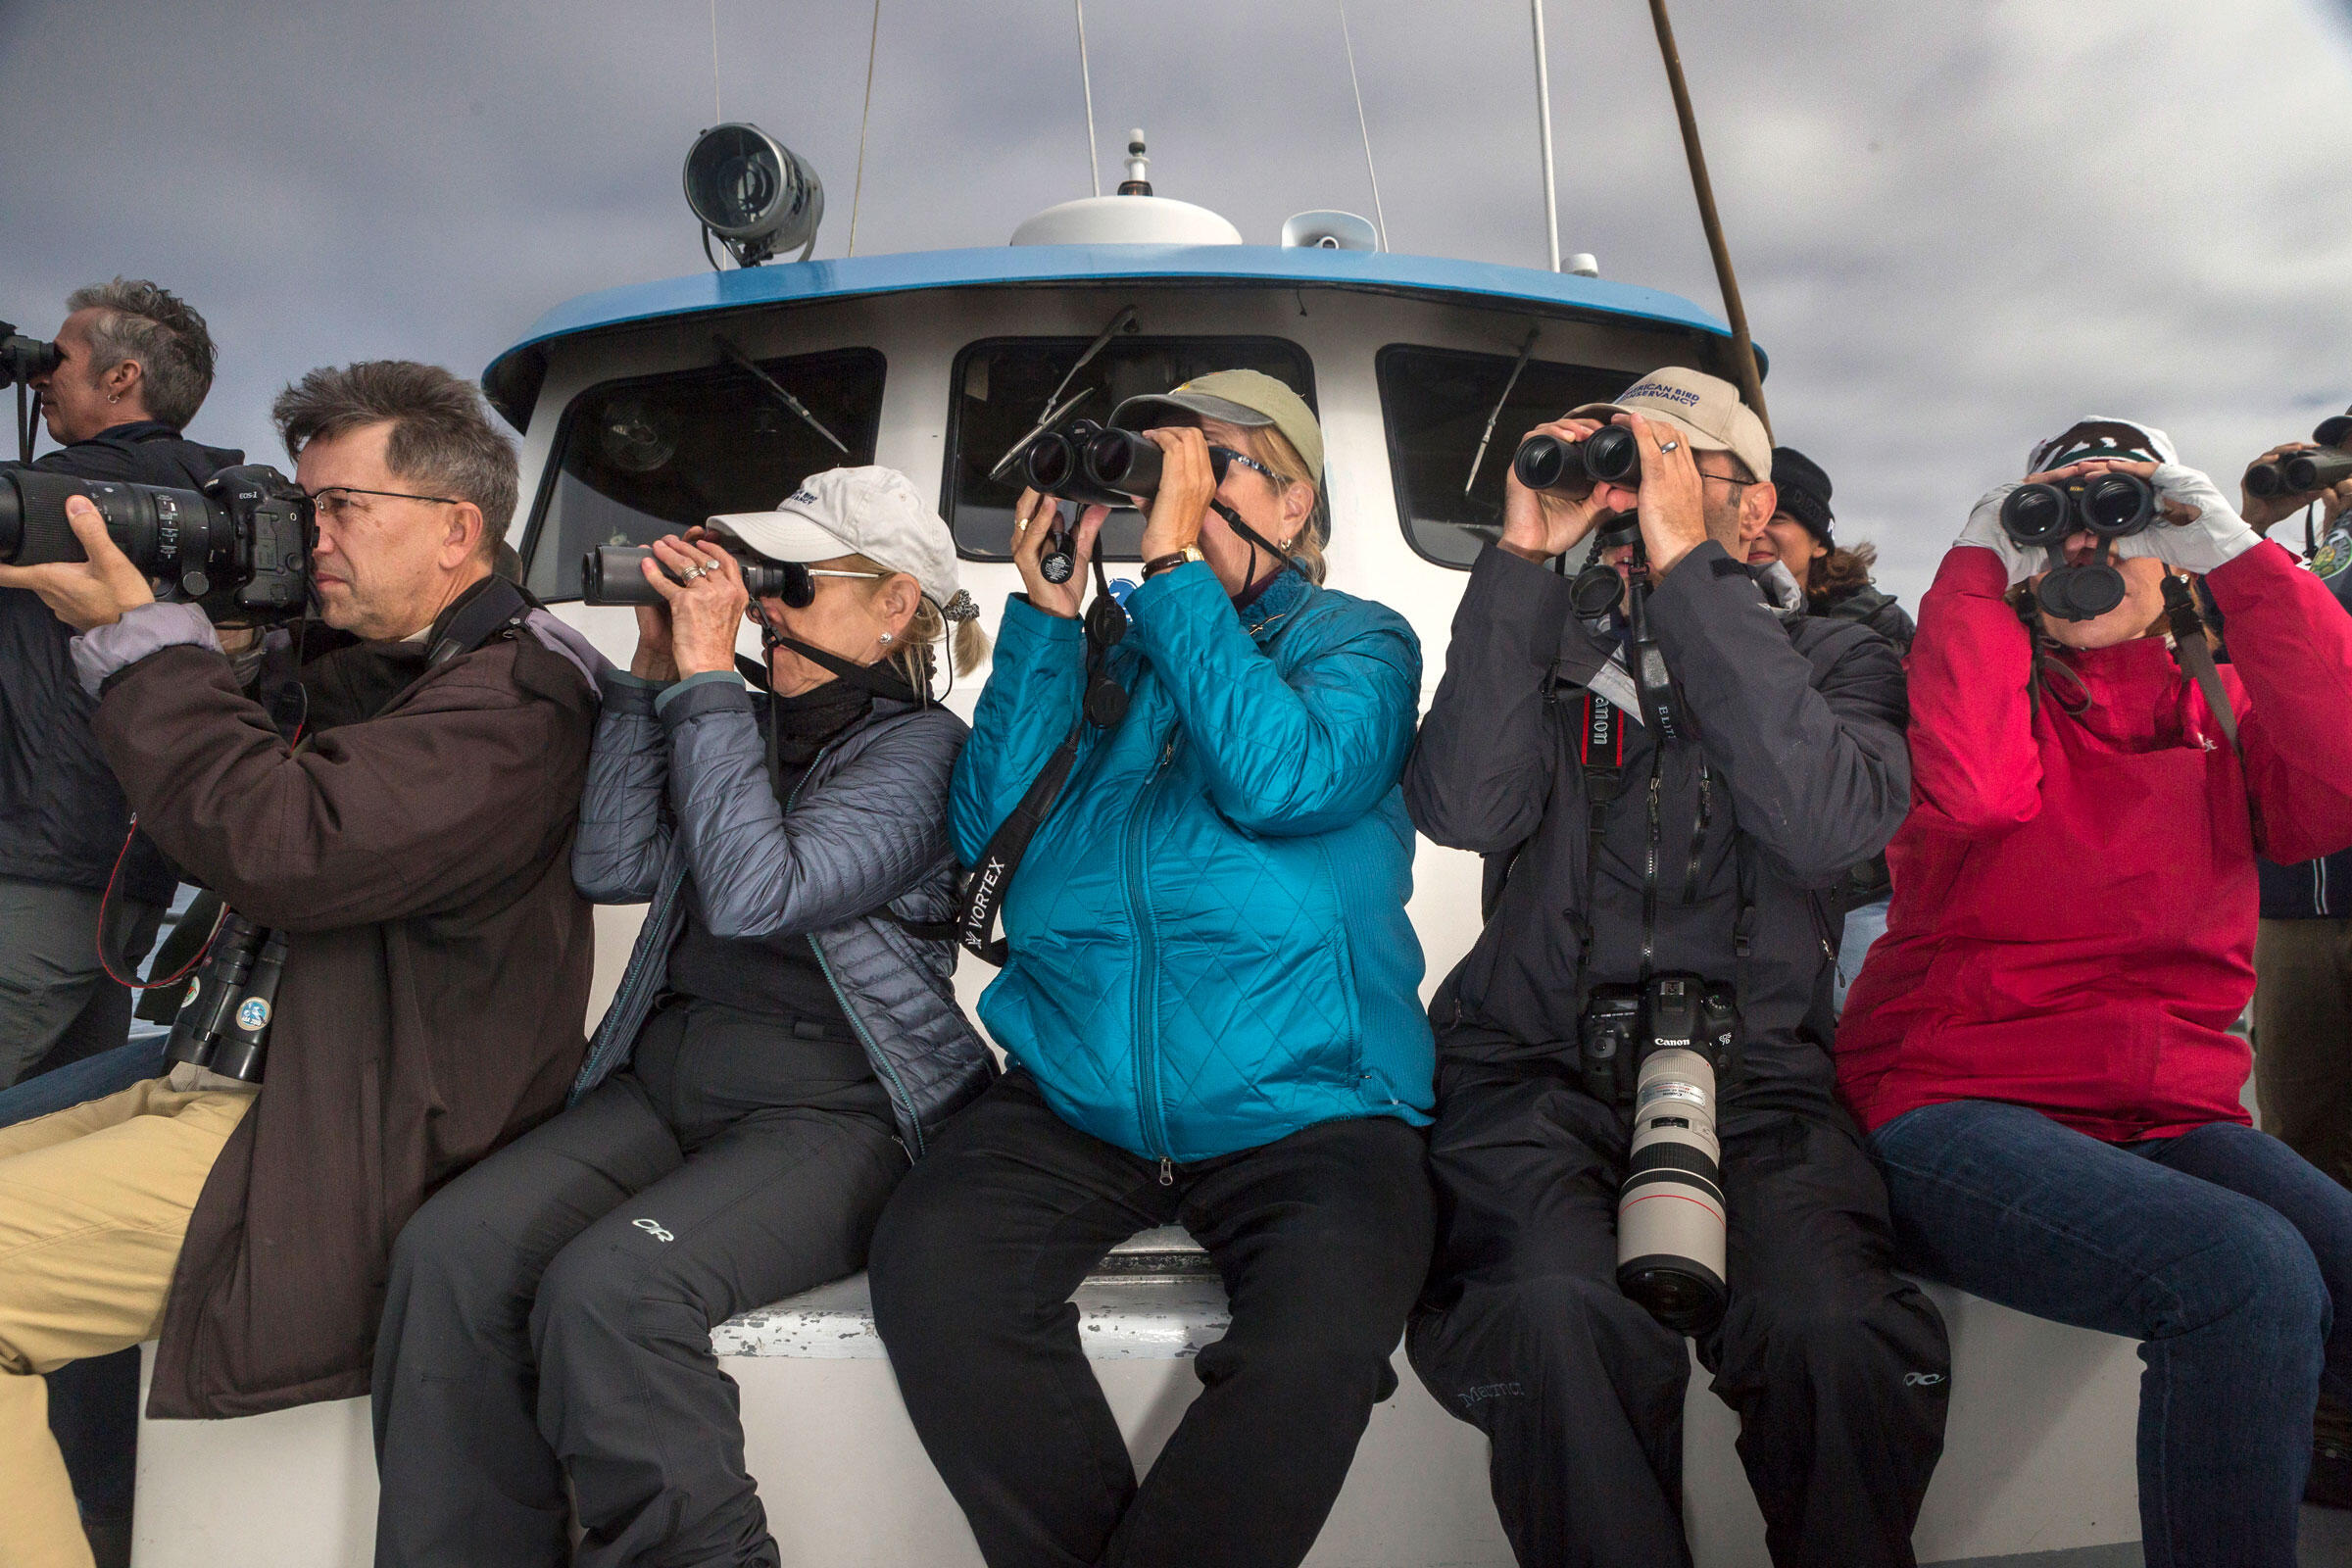 In its 44-year run, more than 67,000 people have taken a trip with Shearwater Journeys. Lauren Owens Lambert